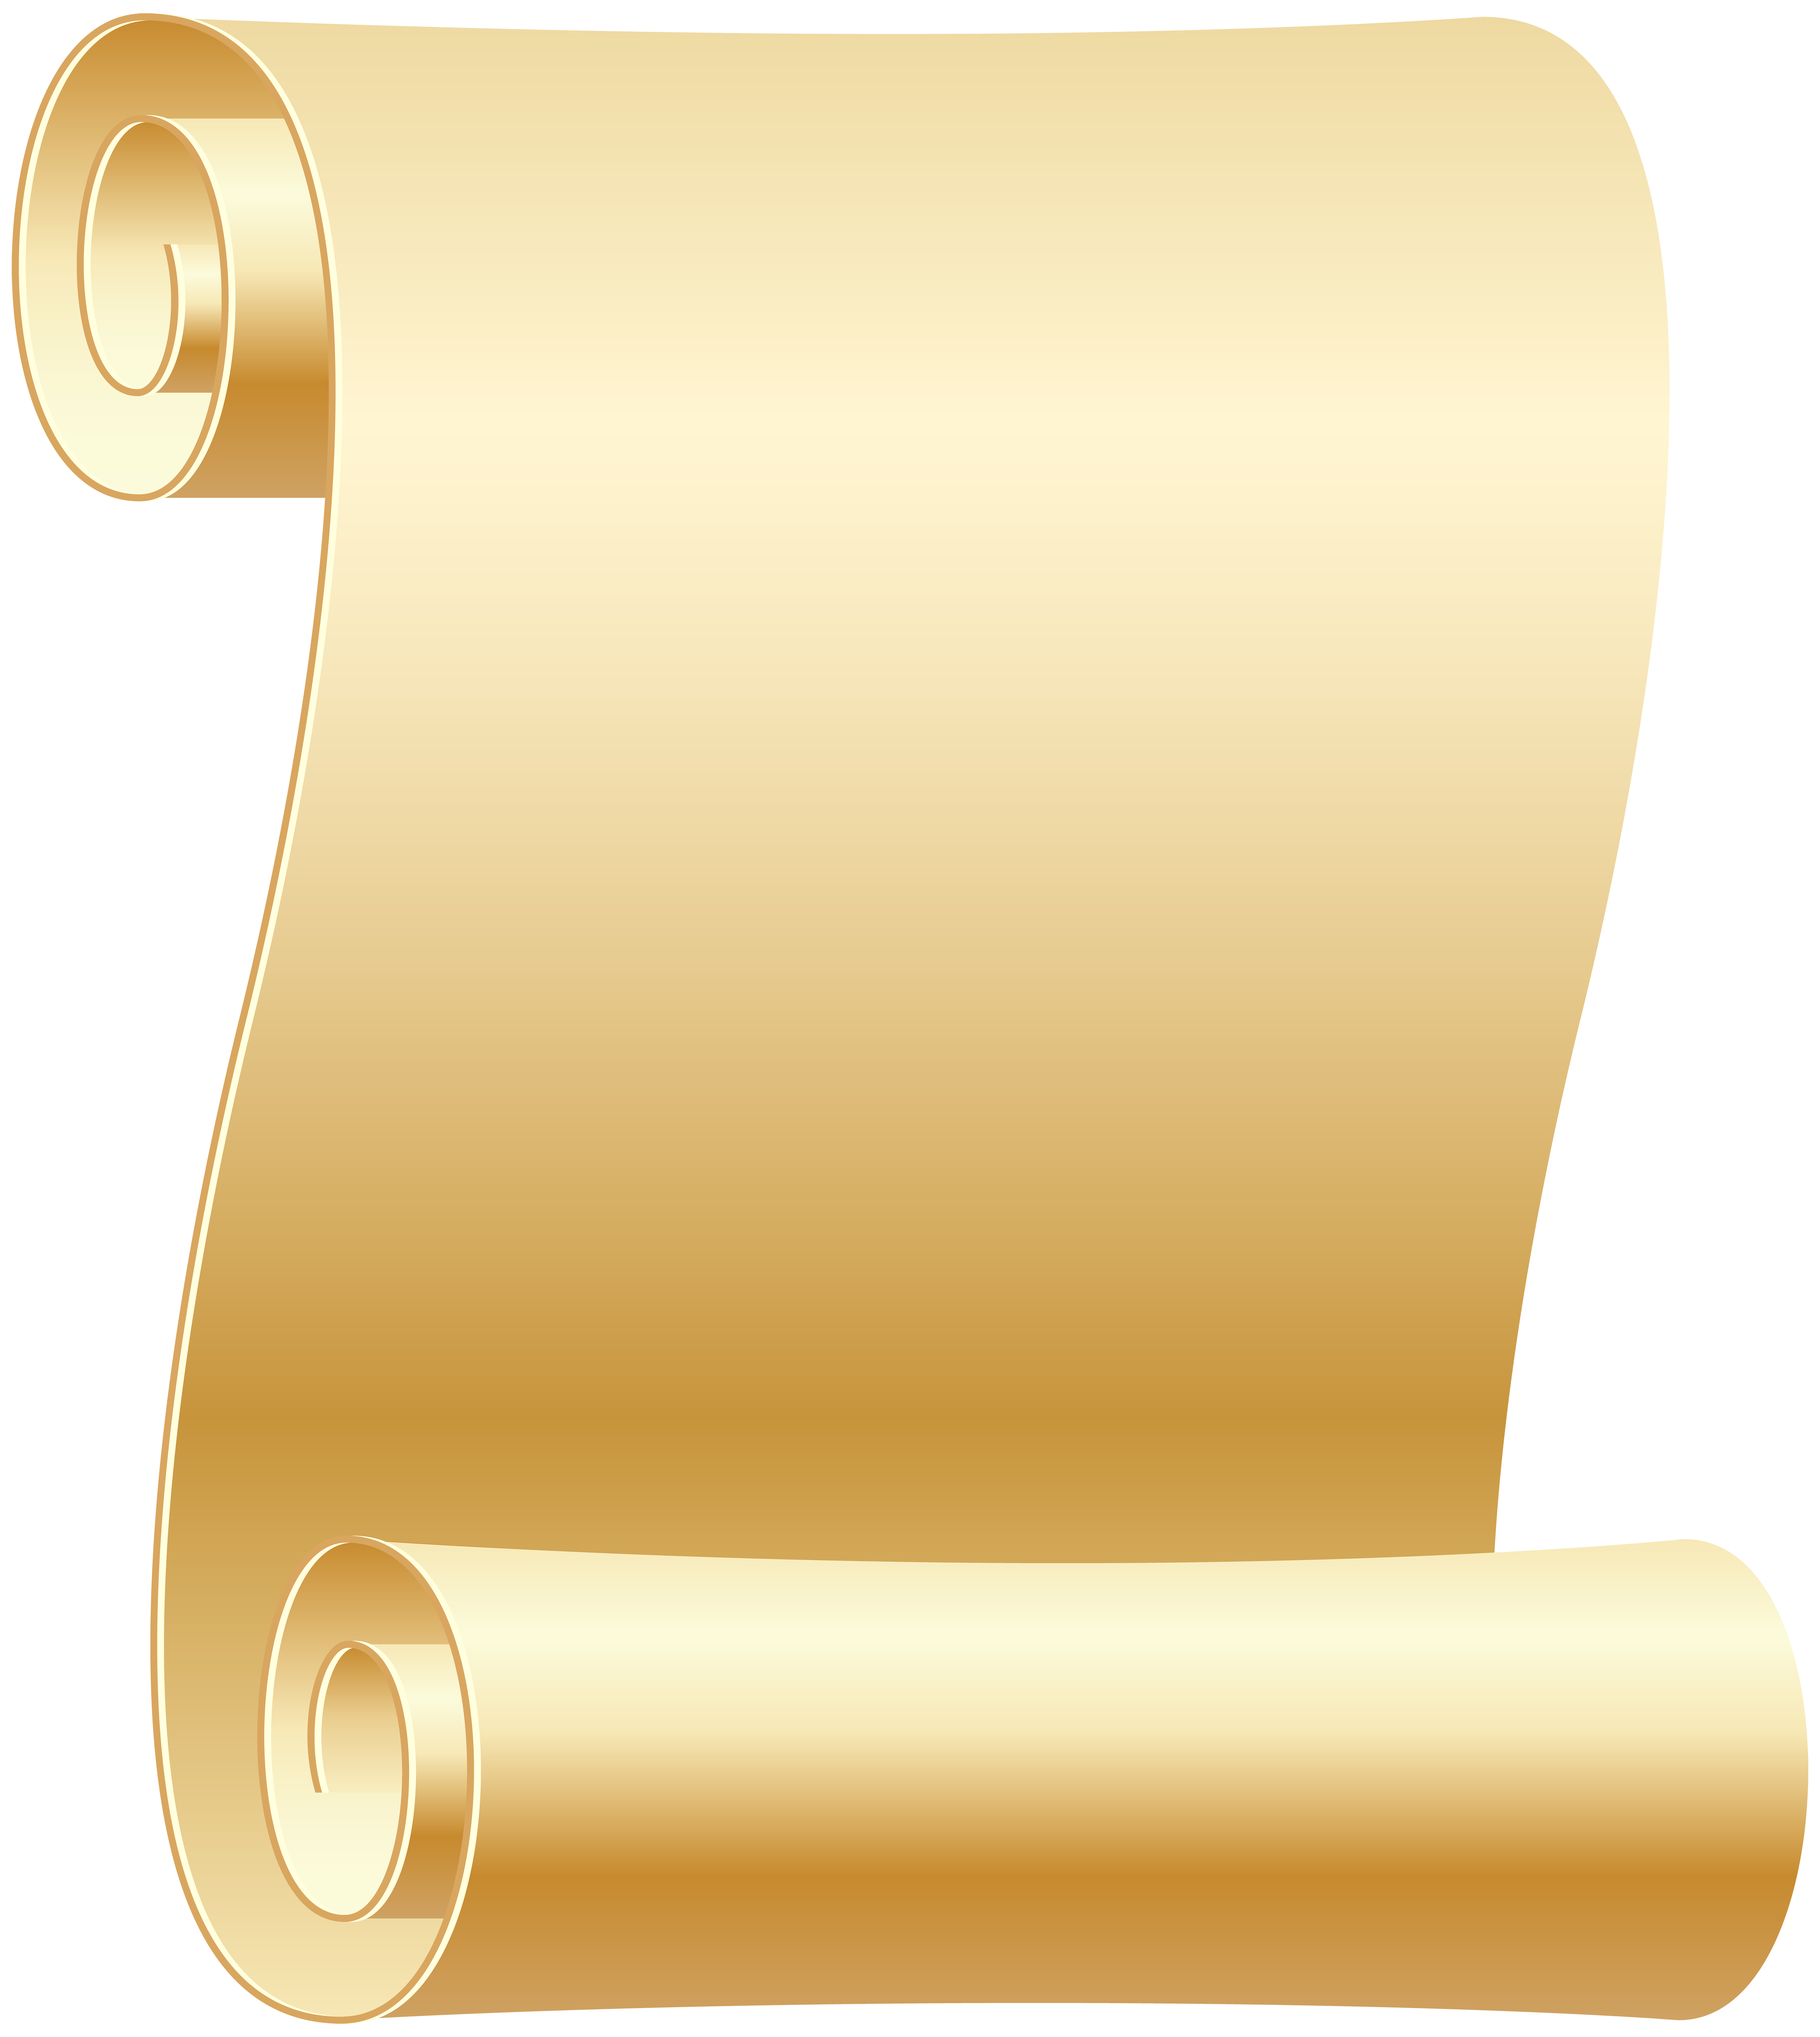 clip art royalty free stock Card clipart coloured paper. Empty scroll transparent png.